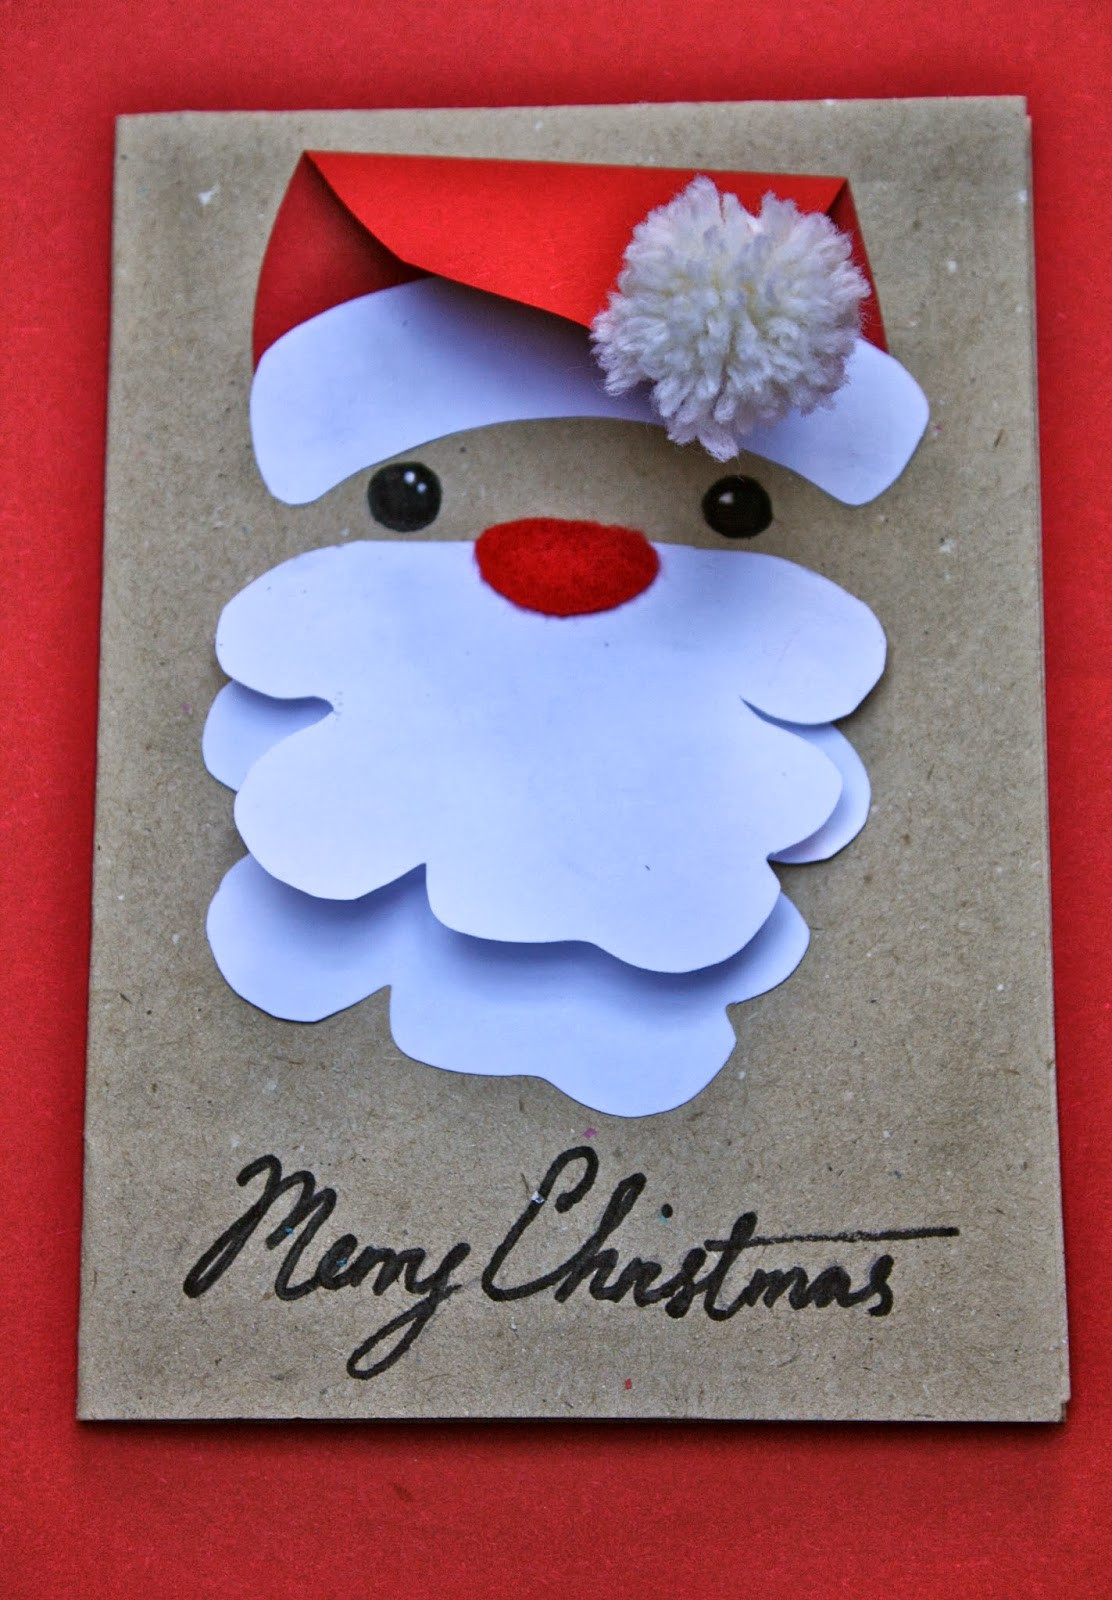 Best ideas about Christmas Card Craft Ideas . Save or Pin Bumper Christmas Craft Box Mrs Fox s life home crafts Now.